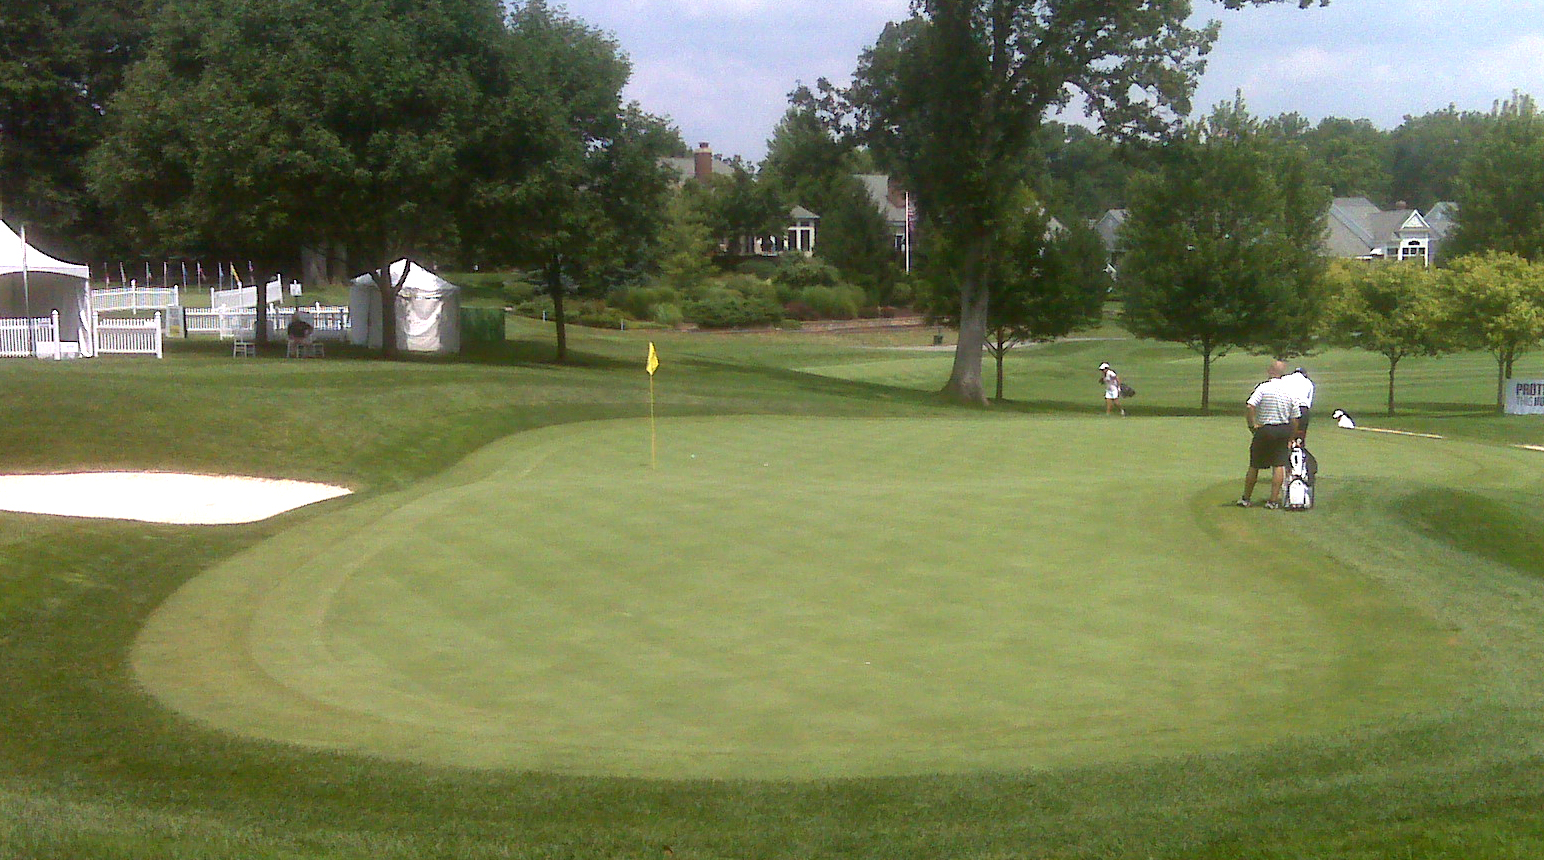 The ninth green at Sycamore Hills Golf Course.